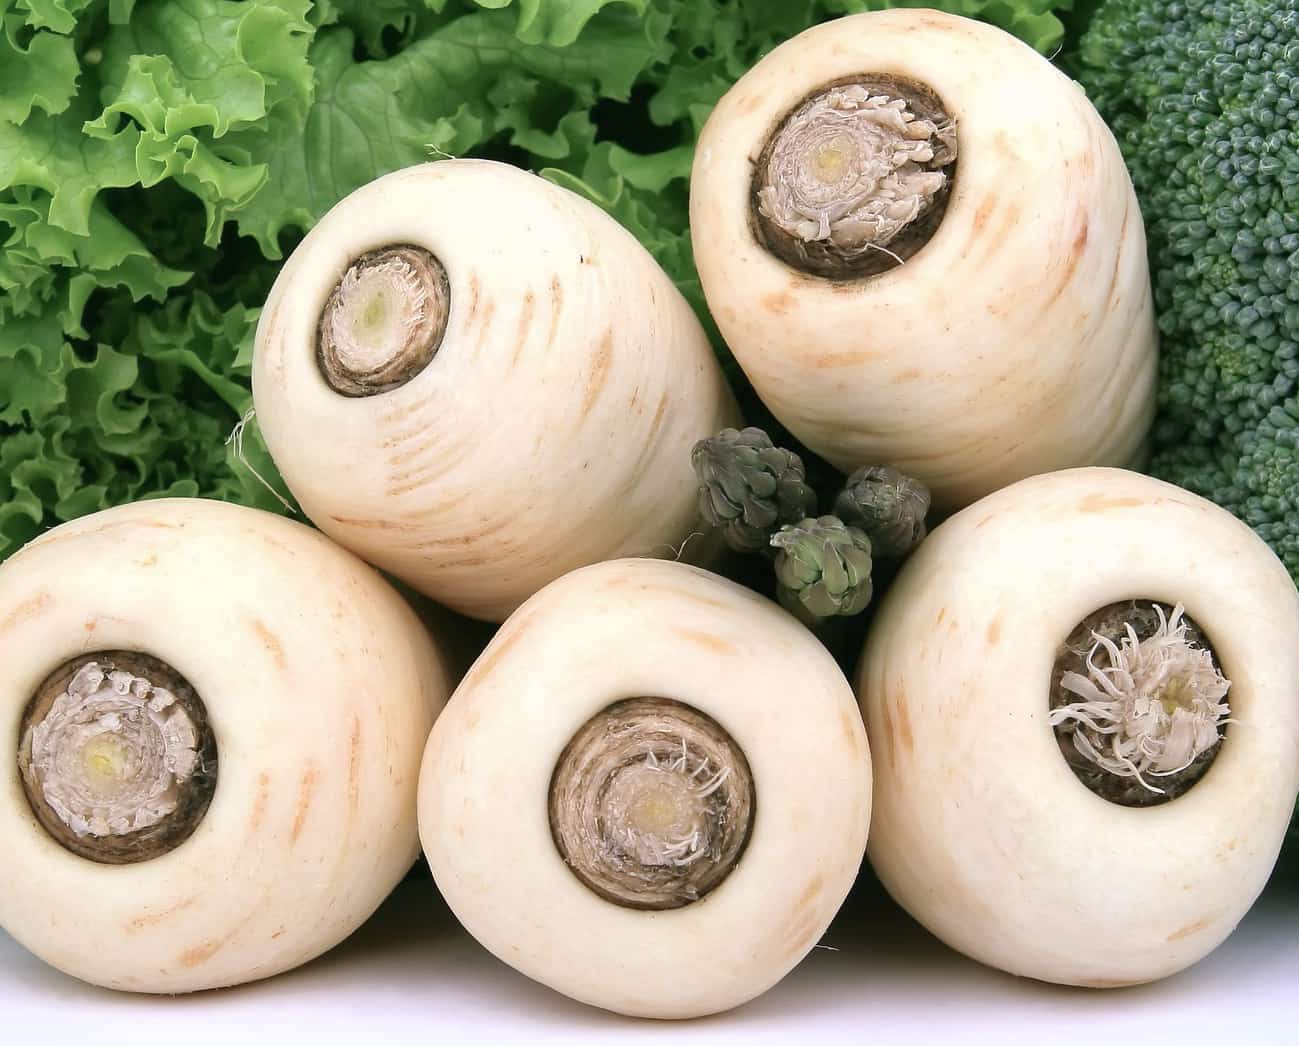 image of parsnip